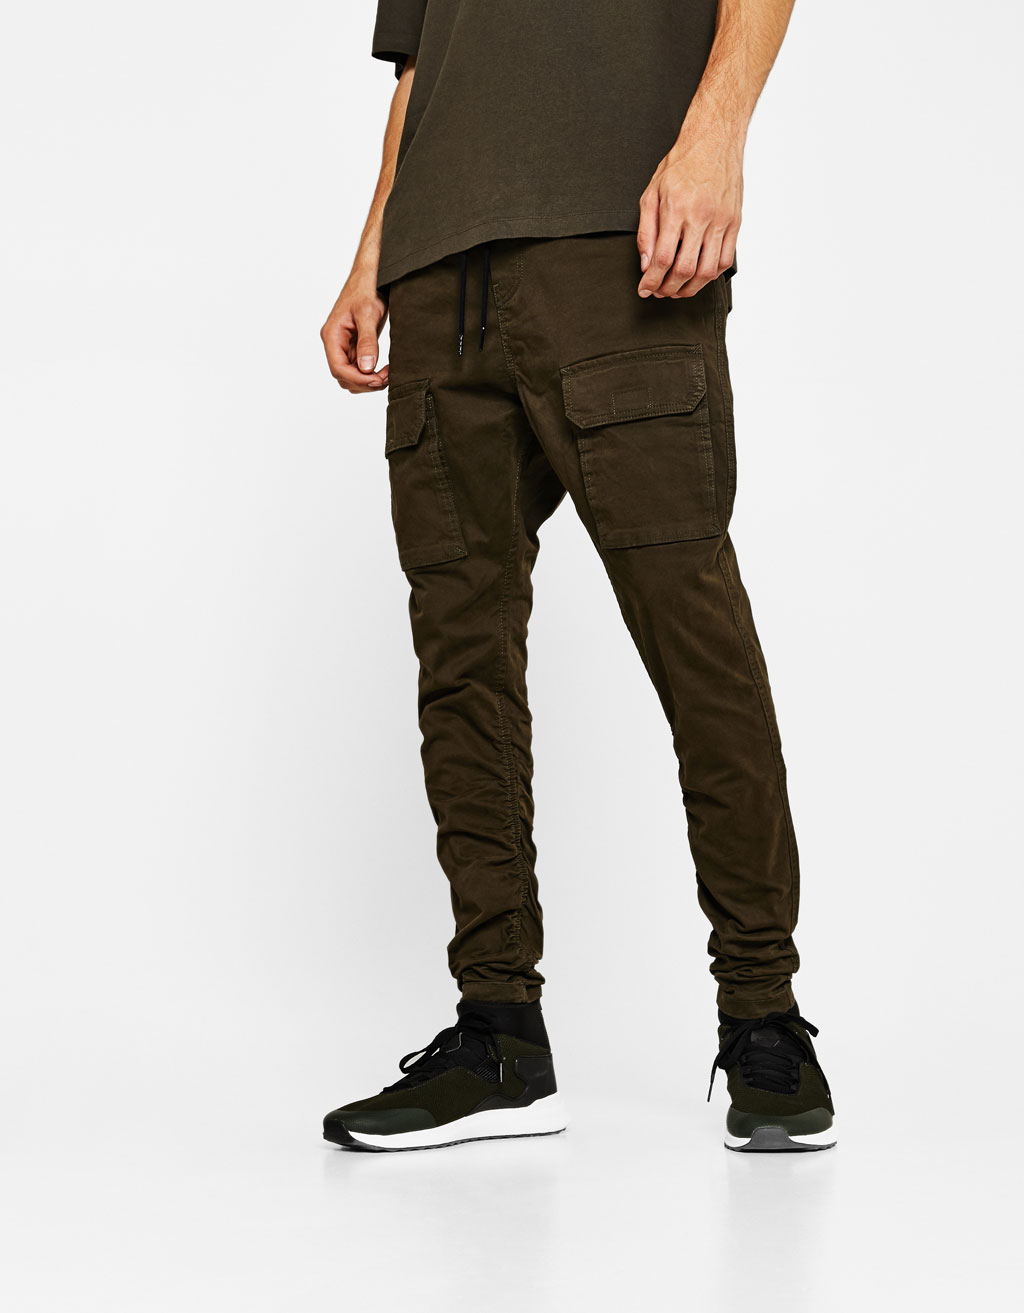 Joggers with shirred hems